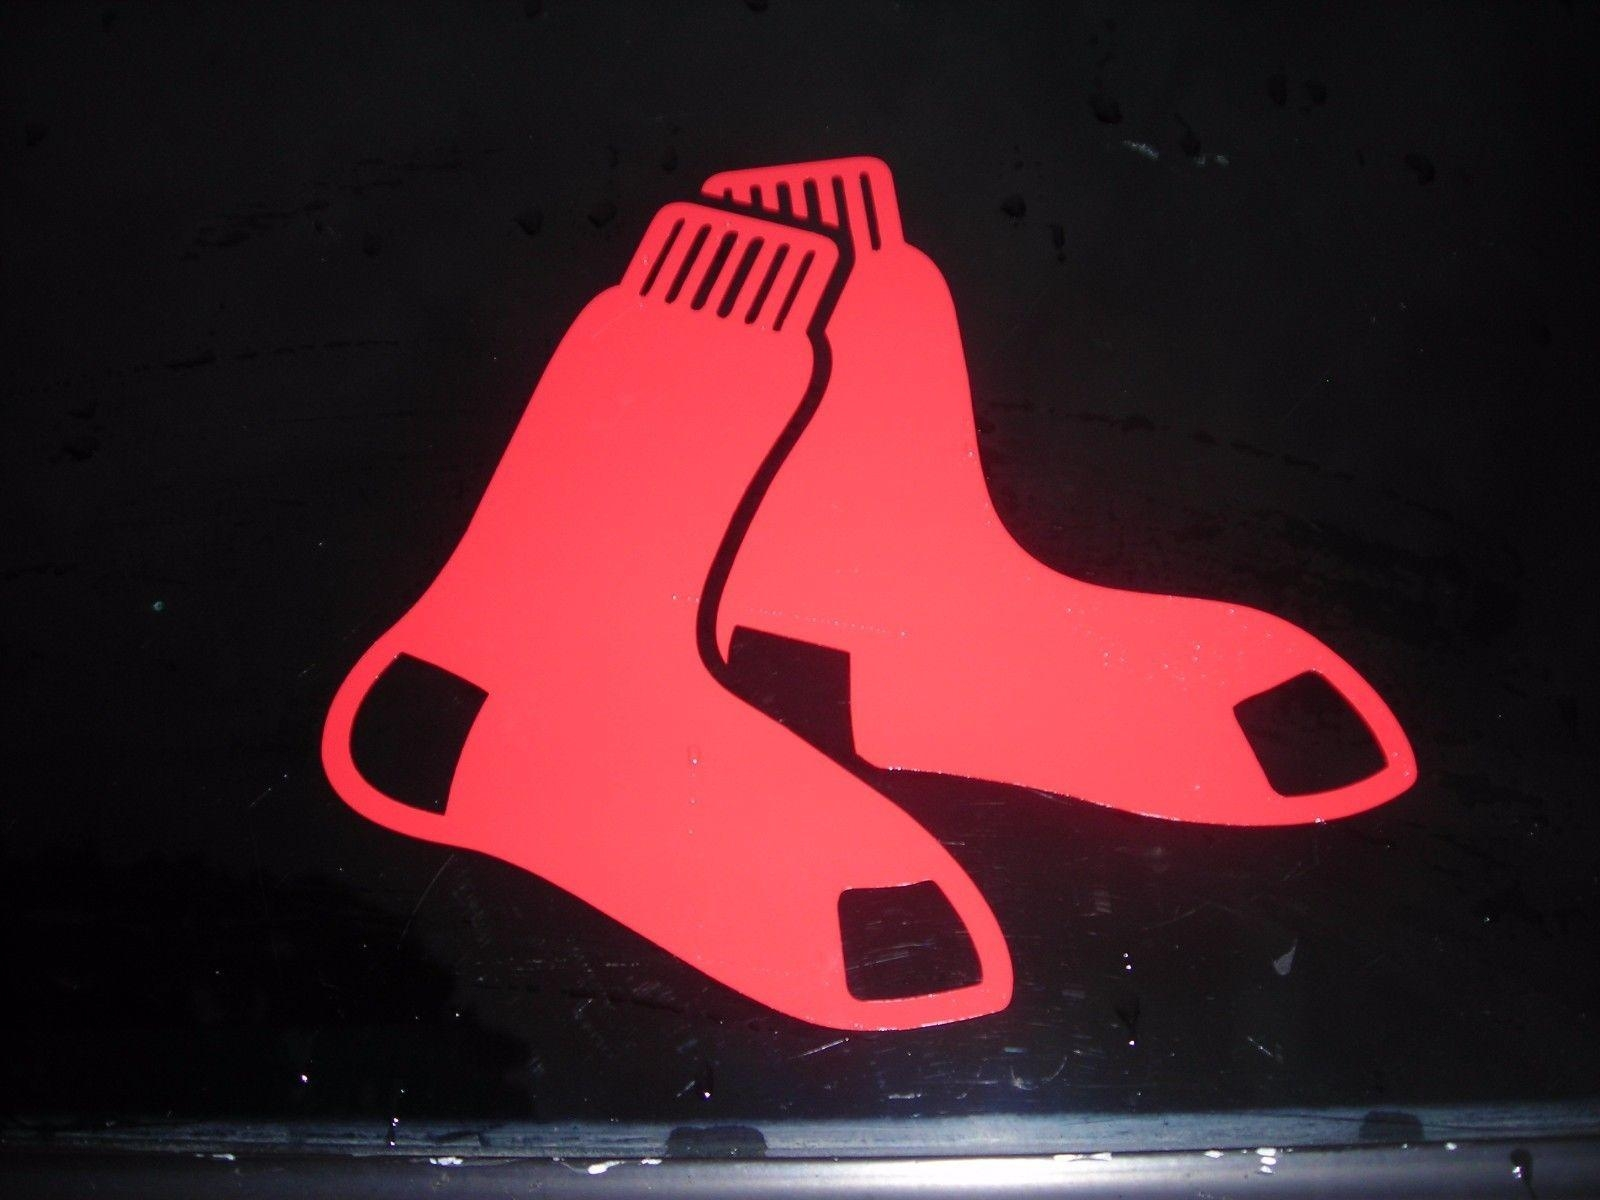 Wall Decals & Stickers , Home Decor , Home, Furniture & Diy In Red Sox Wall Decals (Image 19 of 20)